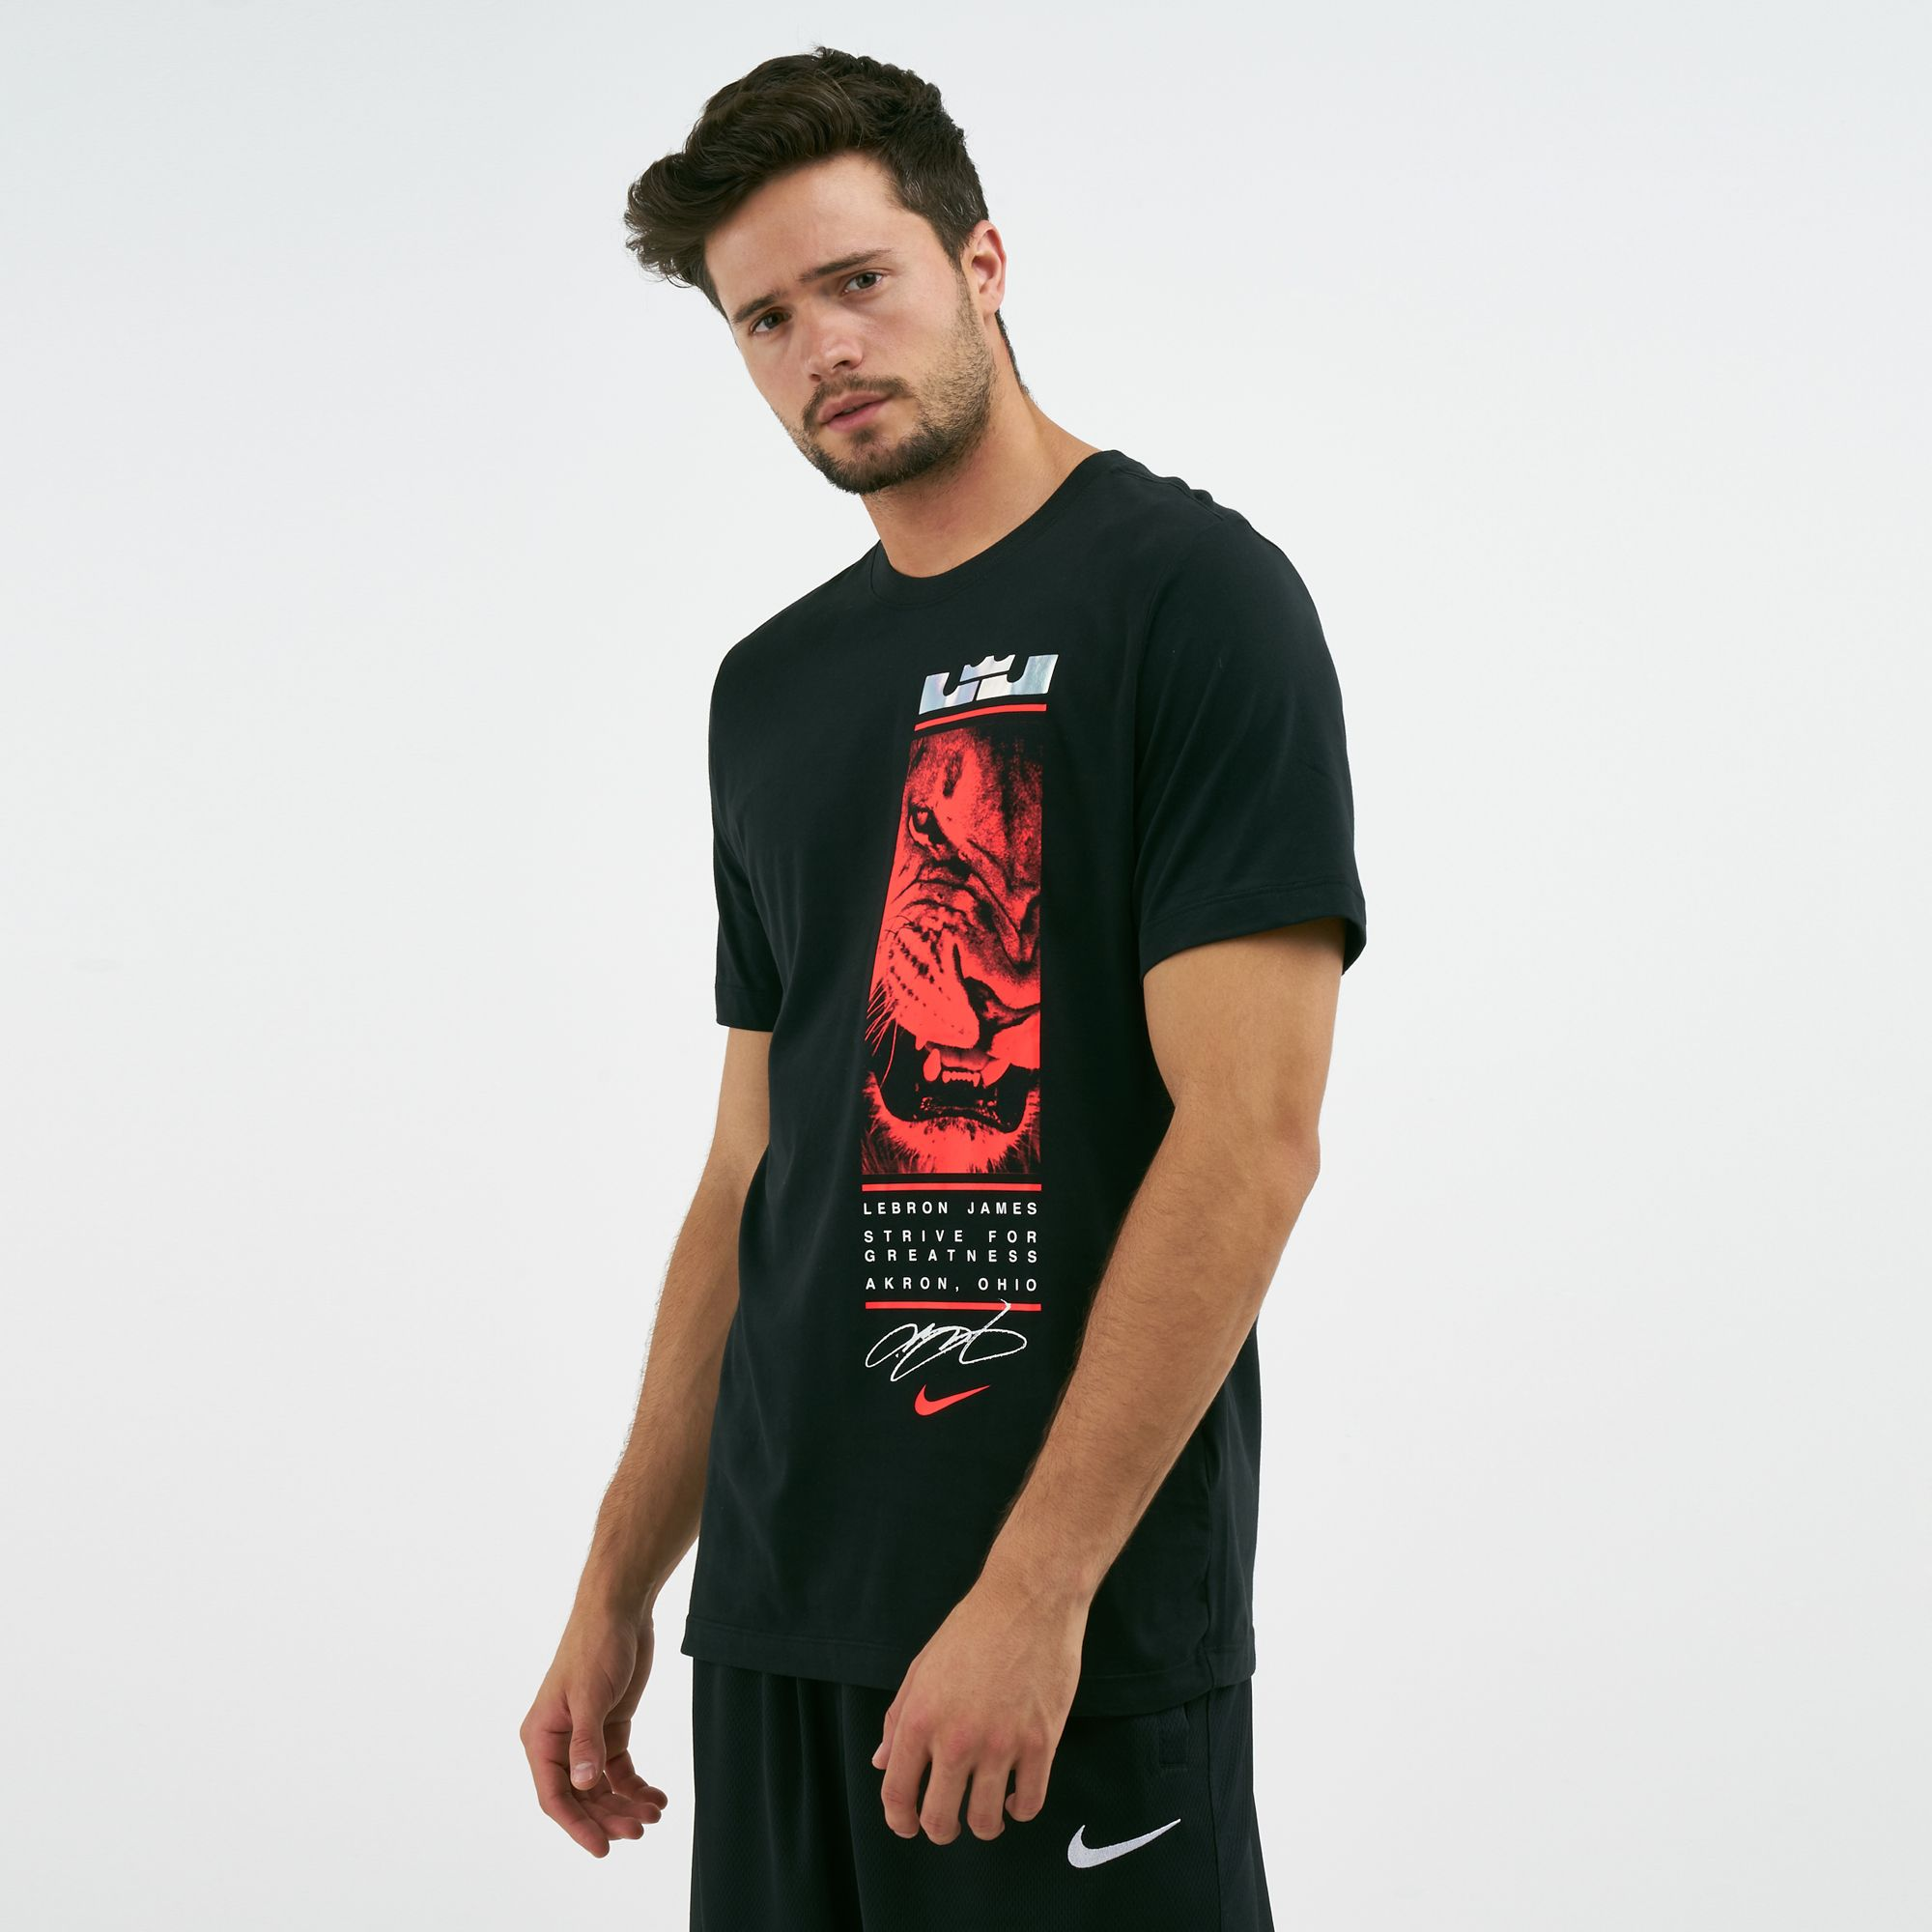 c6764806 Nike Men's Dry LeBron James Lion Graphic T-Shirt | T-Shirts | Tops ...